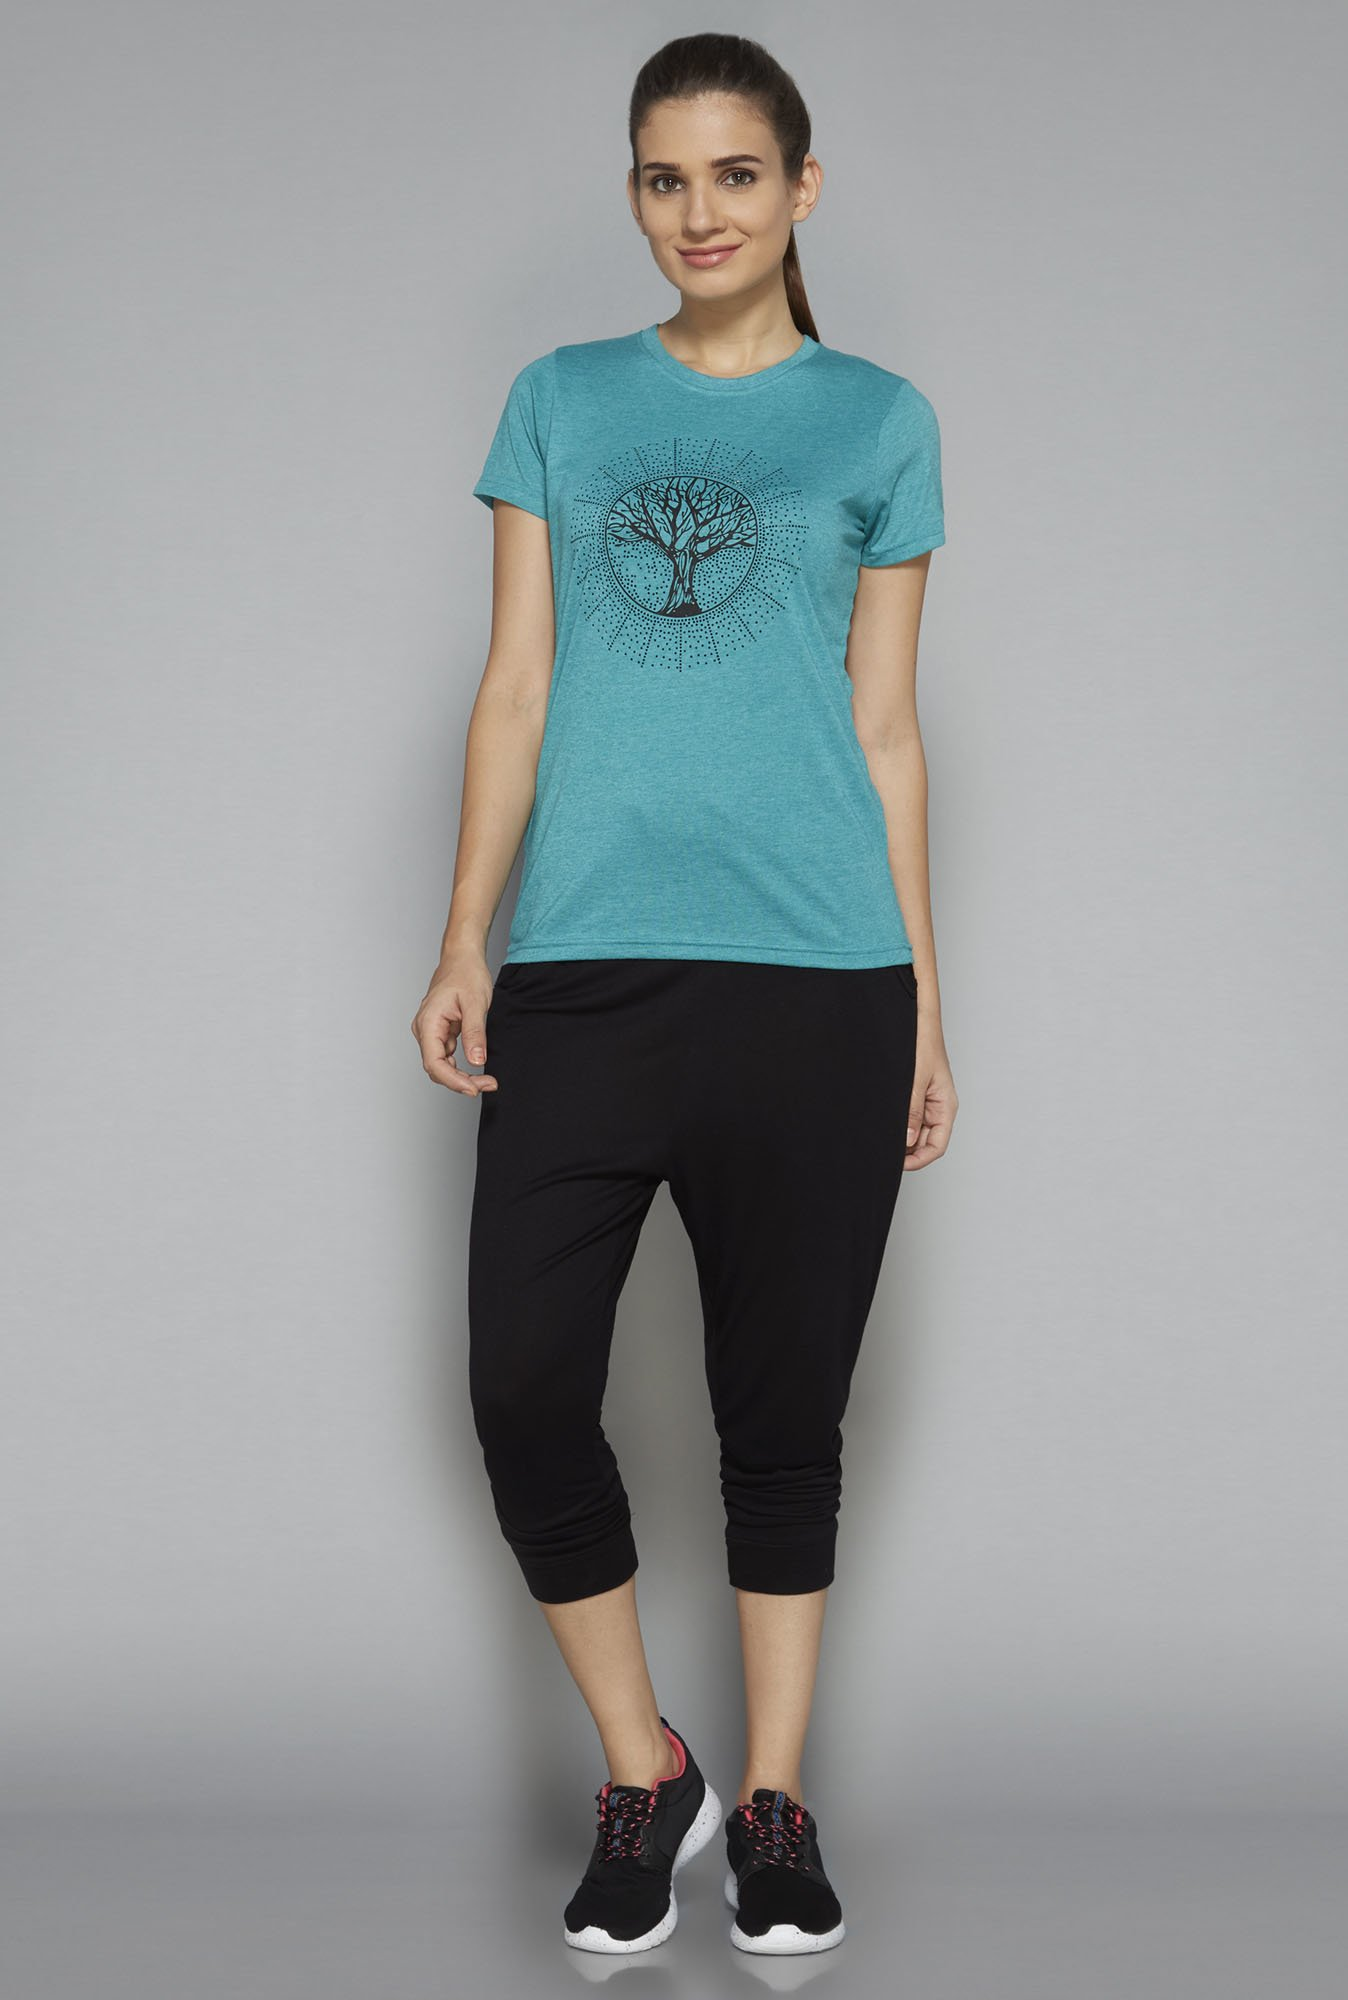 Westsport by Westside Turquoise Printed T Shirt